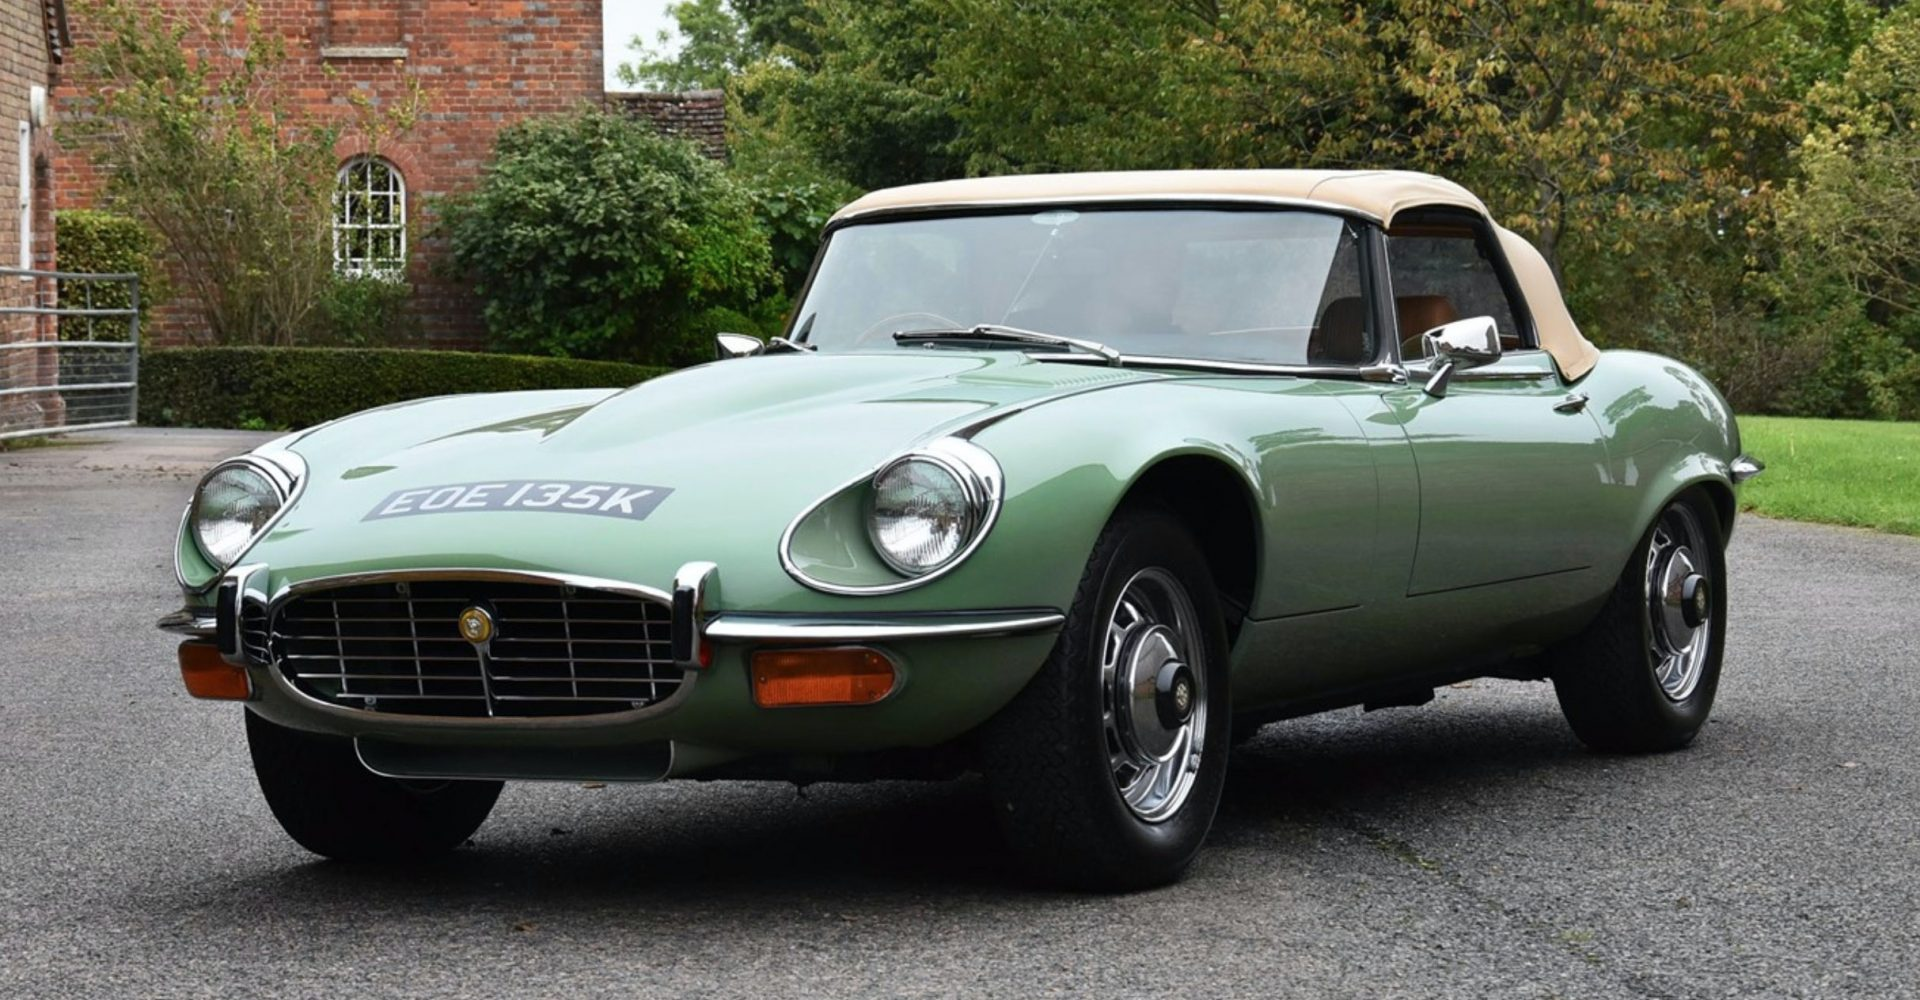 A 1972 Jaguar E-Type formerly owned by Kevin Keegan undergoes restoration